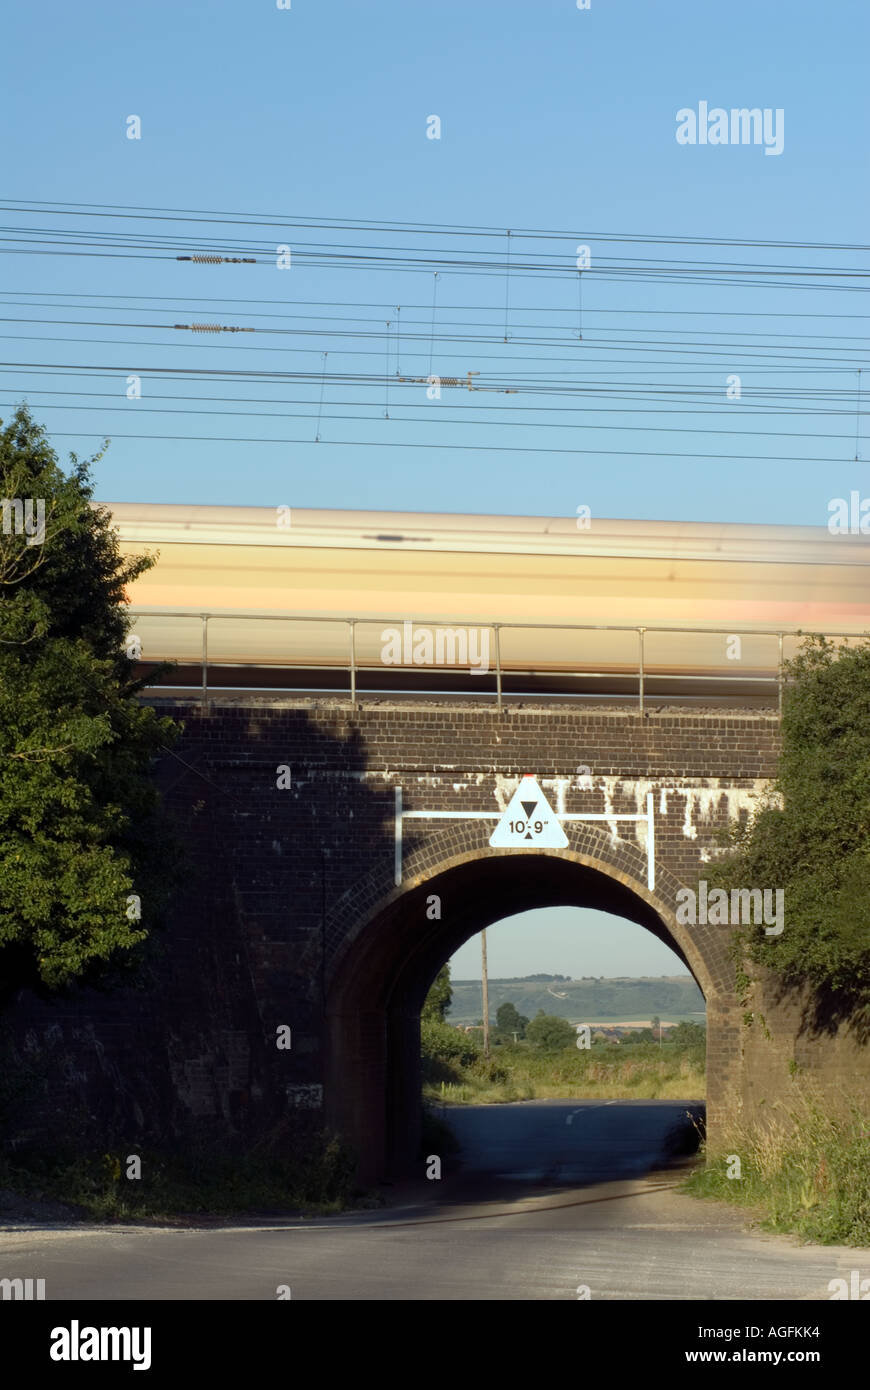 The railway bridge where on the 8th eight August 1963 the infamous Great Train Robbery took place at Sears Crossing Stock Photo